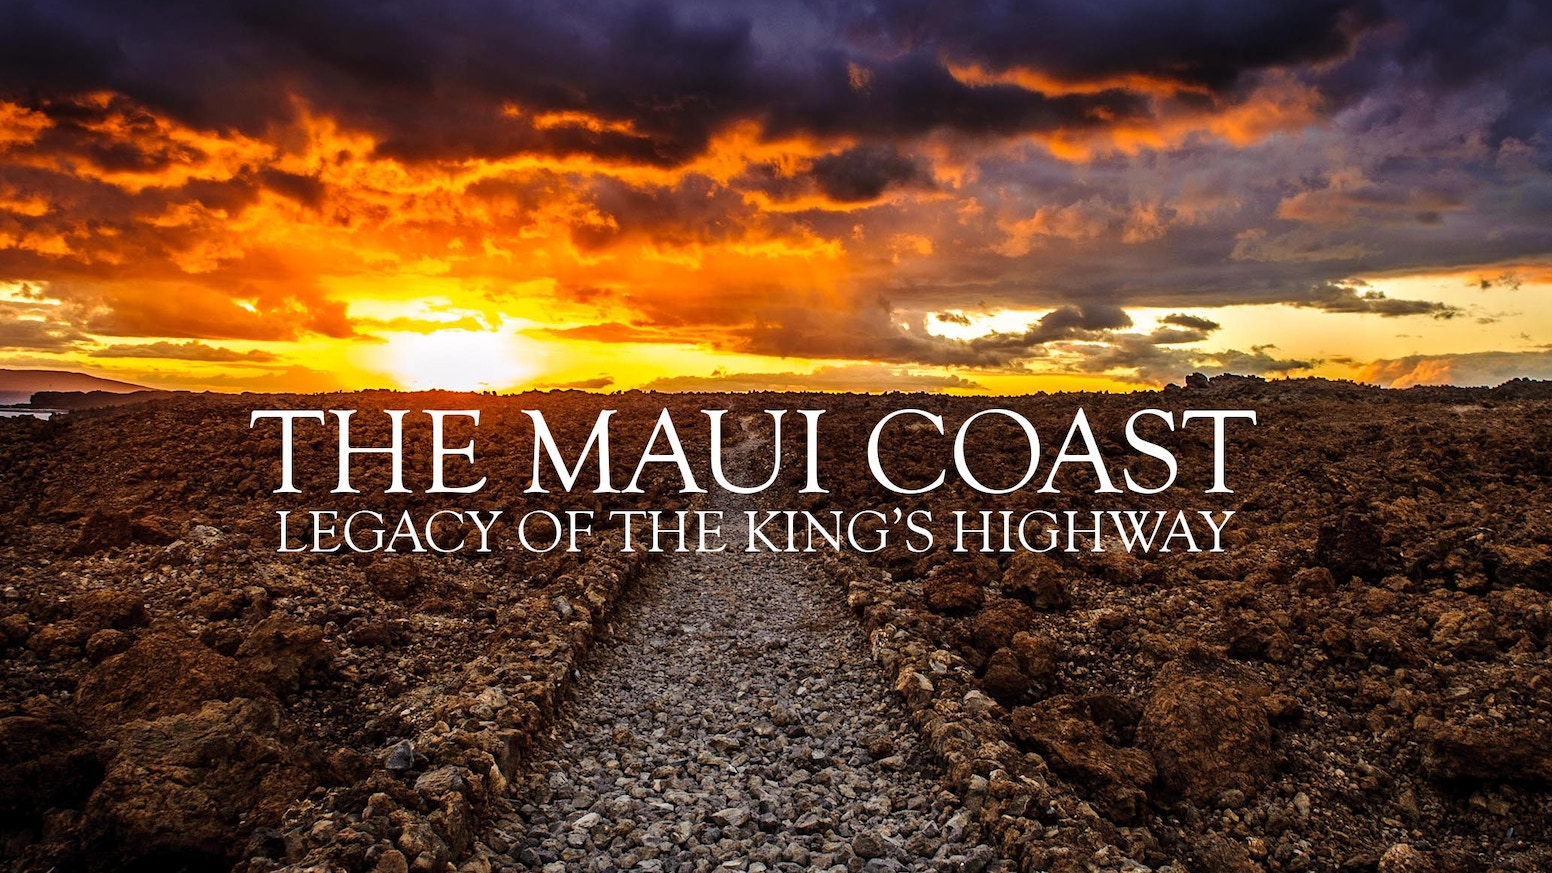 A fine art photography book that captures the stunning beauty of the Maui Coast and the legacy of the ancient King's Highway.